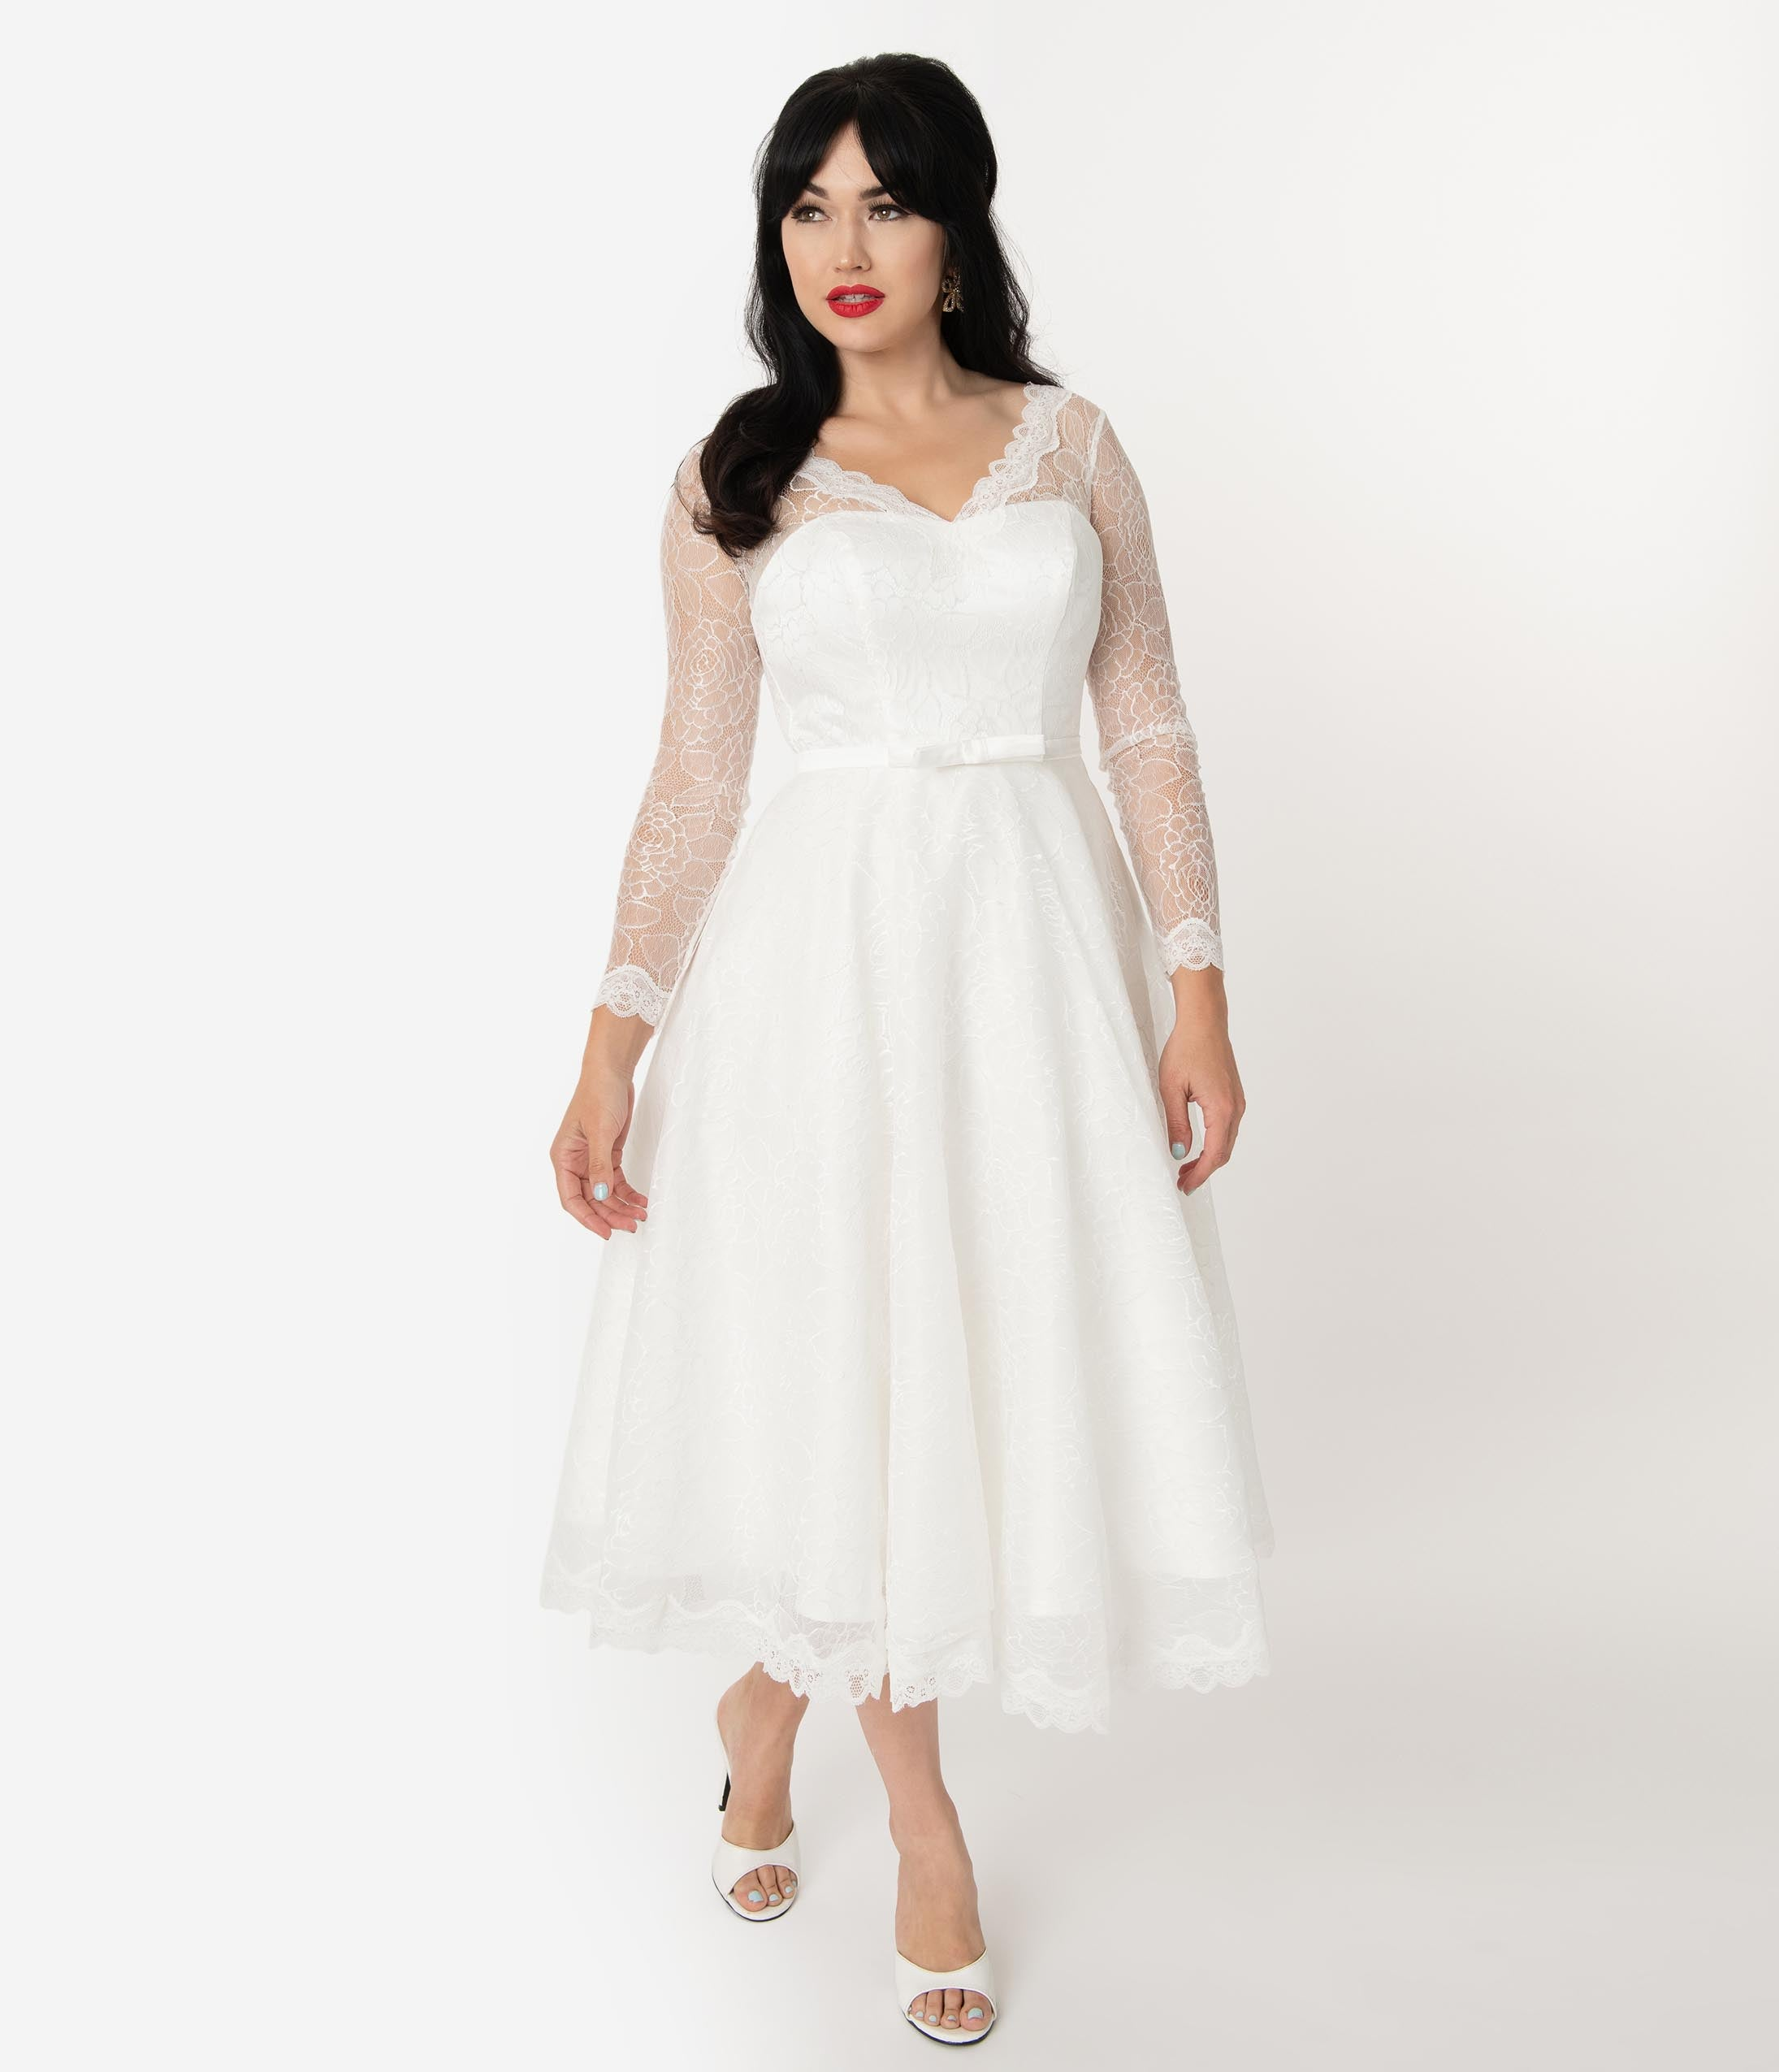 1940s Style Wedding Dresses | Classic Wedding Dresses Unique Vintage 1950S Ivory Lace Long Sleeve Martinique Bridal Dress $188.00 AT vintagedancer.com